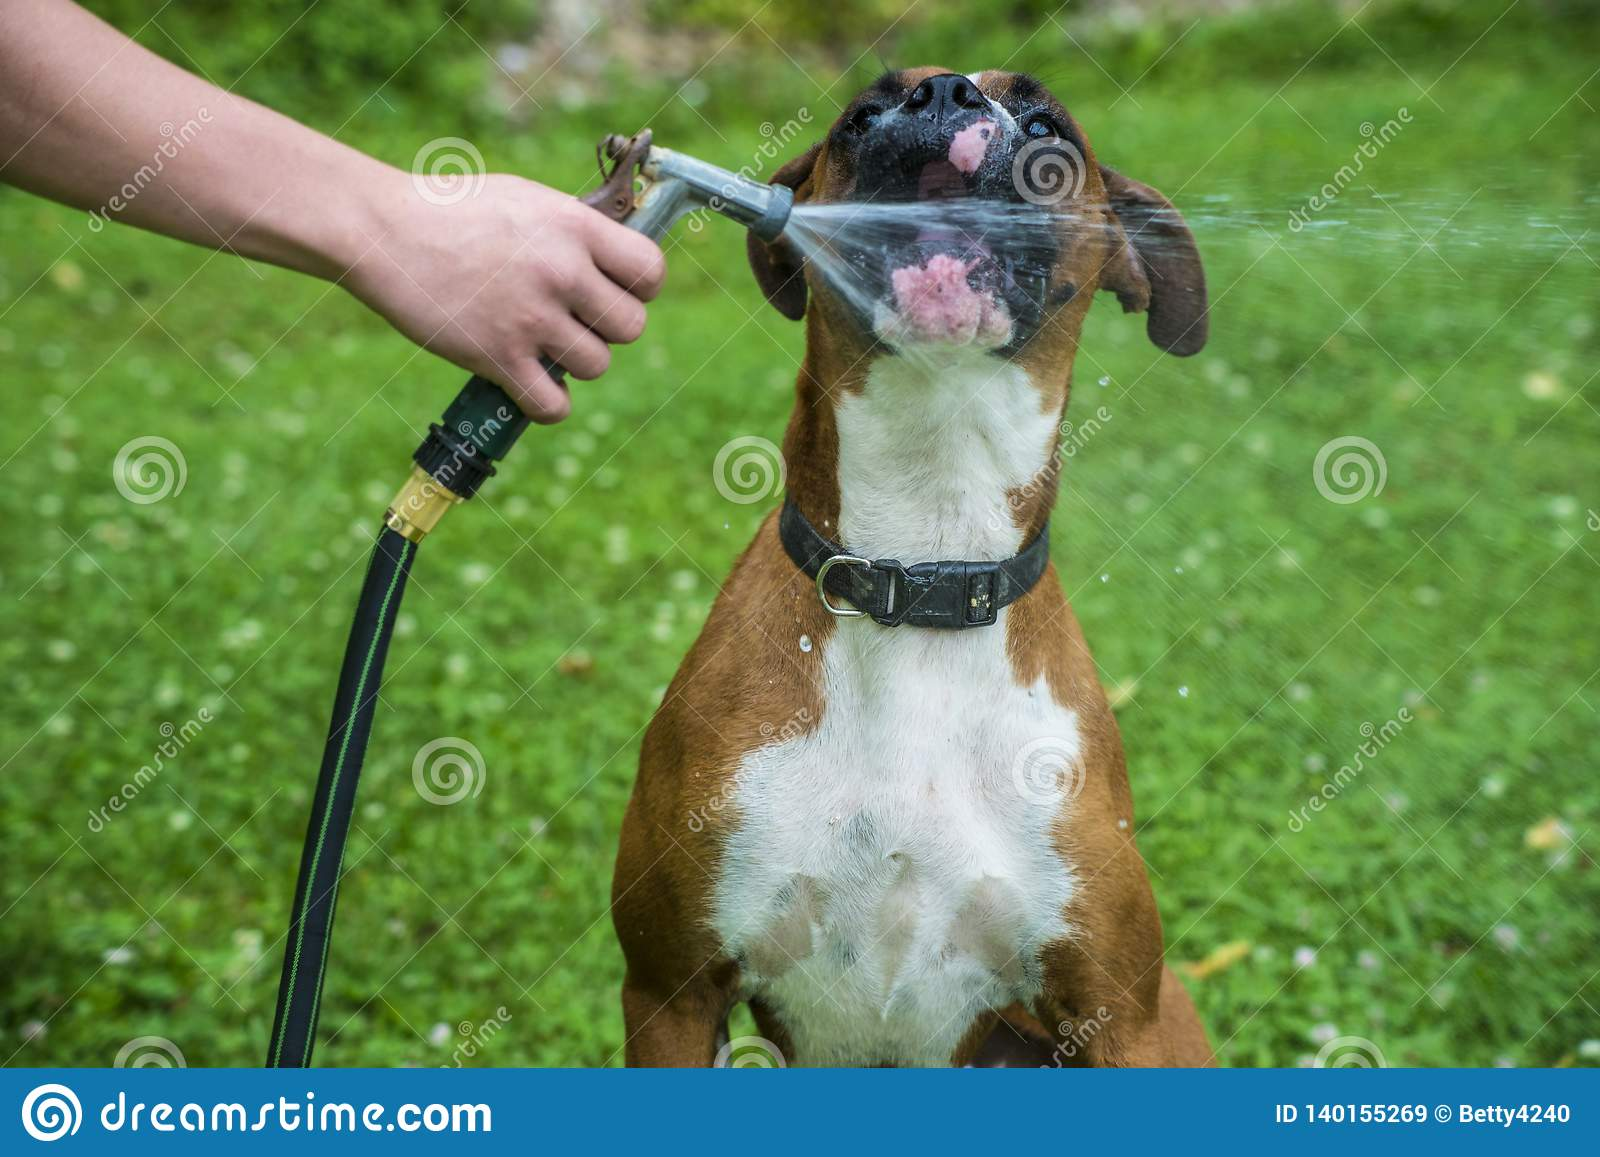 Boxer Dog Drinks Water From A Garden Hose. Stock Image - Image of ...